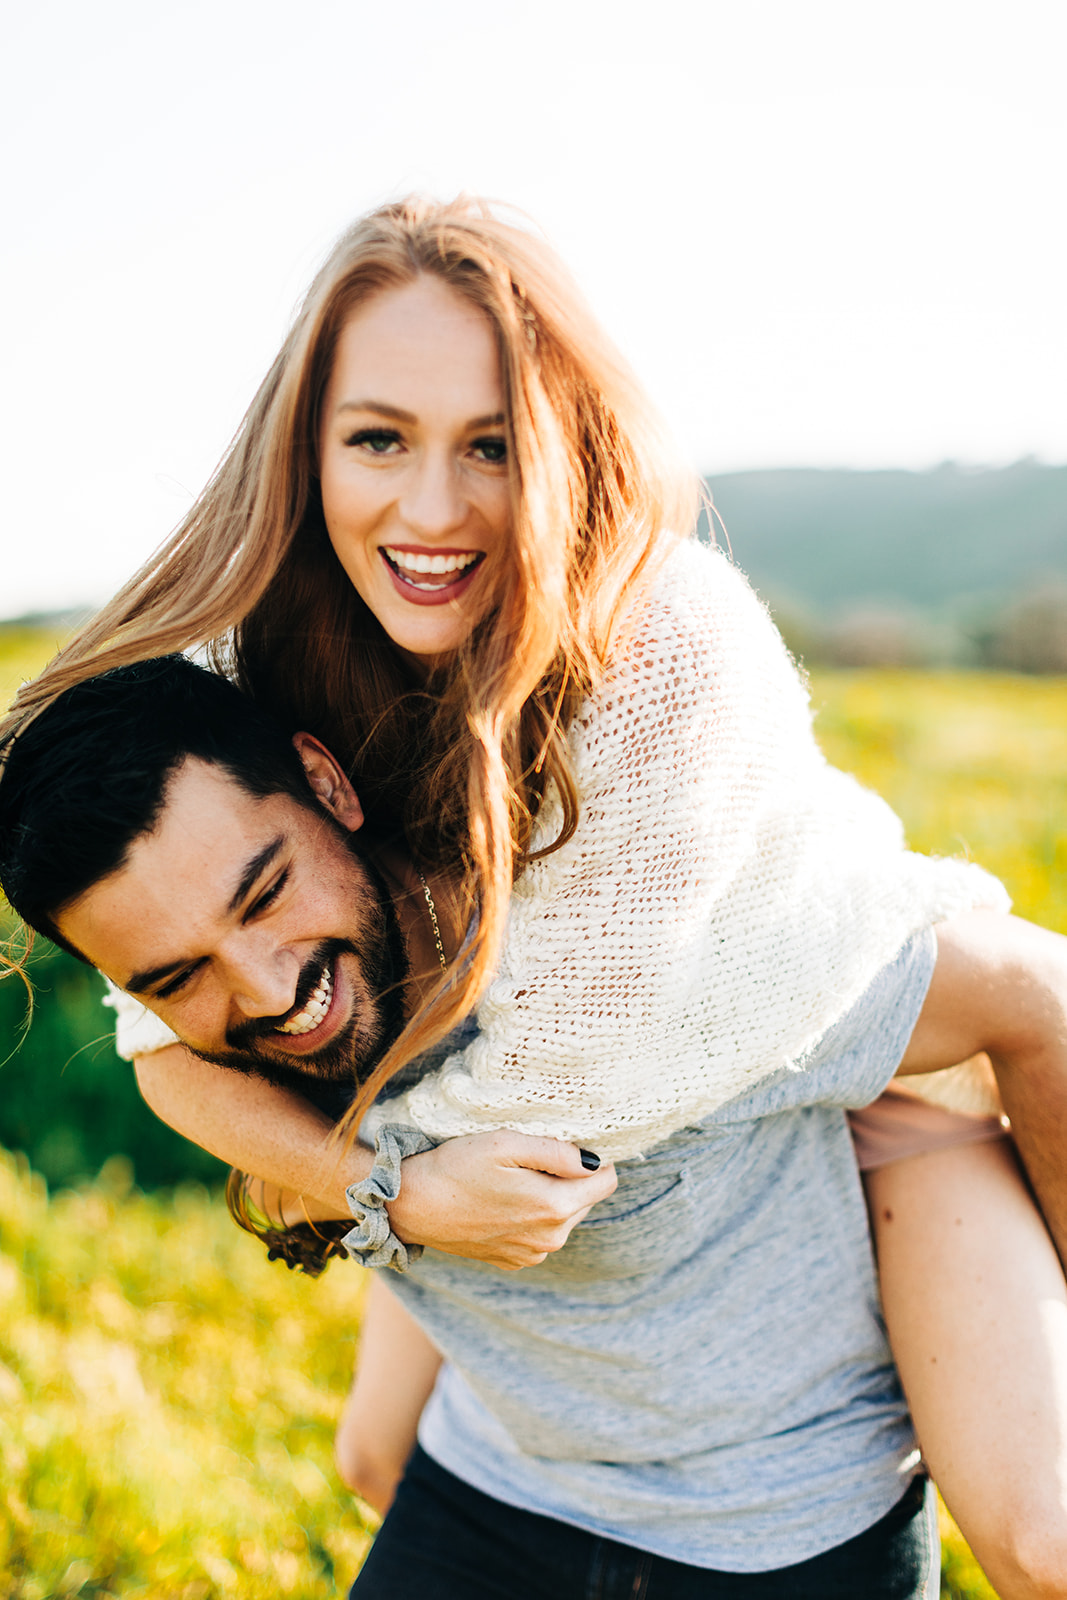 Katie-Yovin_Richard_Superbloom-Engagement-Photos_Clarisse-Rae_Southern-California-Wedding-Photographer-Orange-County-Engagement-Photos-16